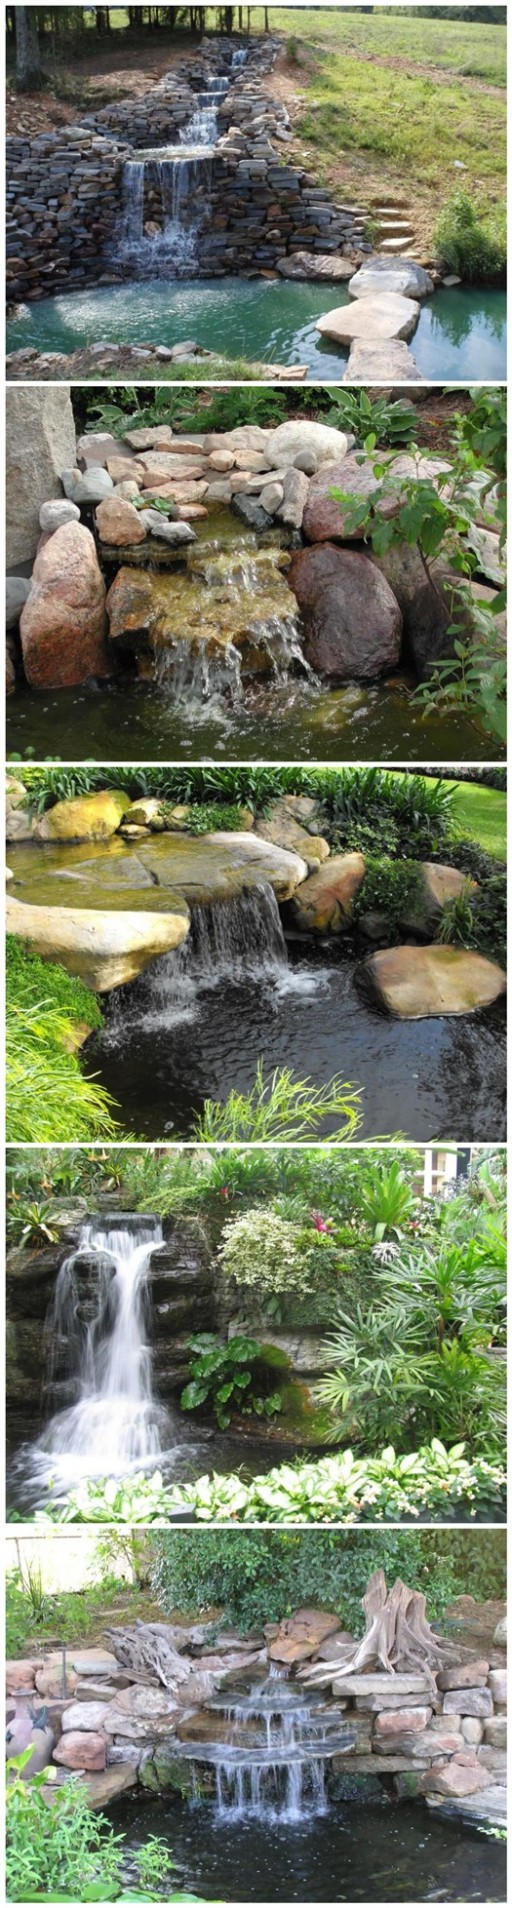 How to build a garden waterfall pond diy tag for Diy waterfall pond ideas